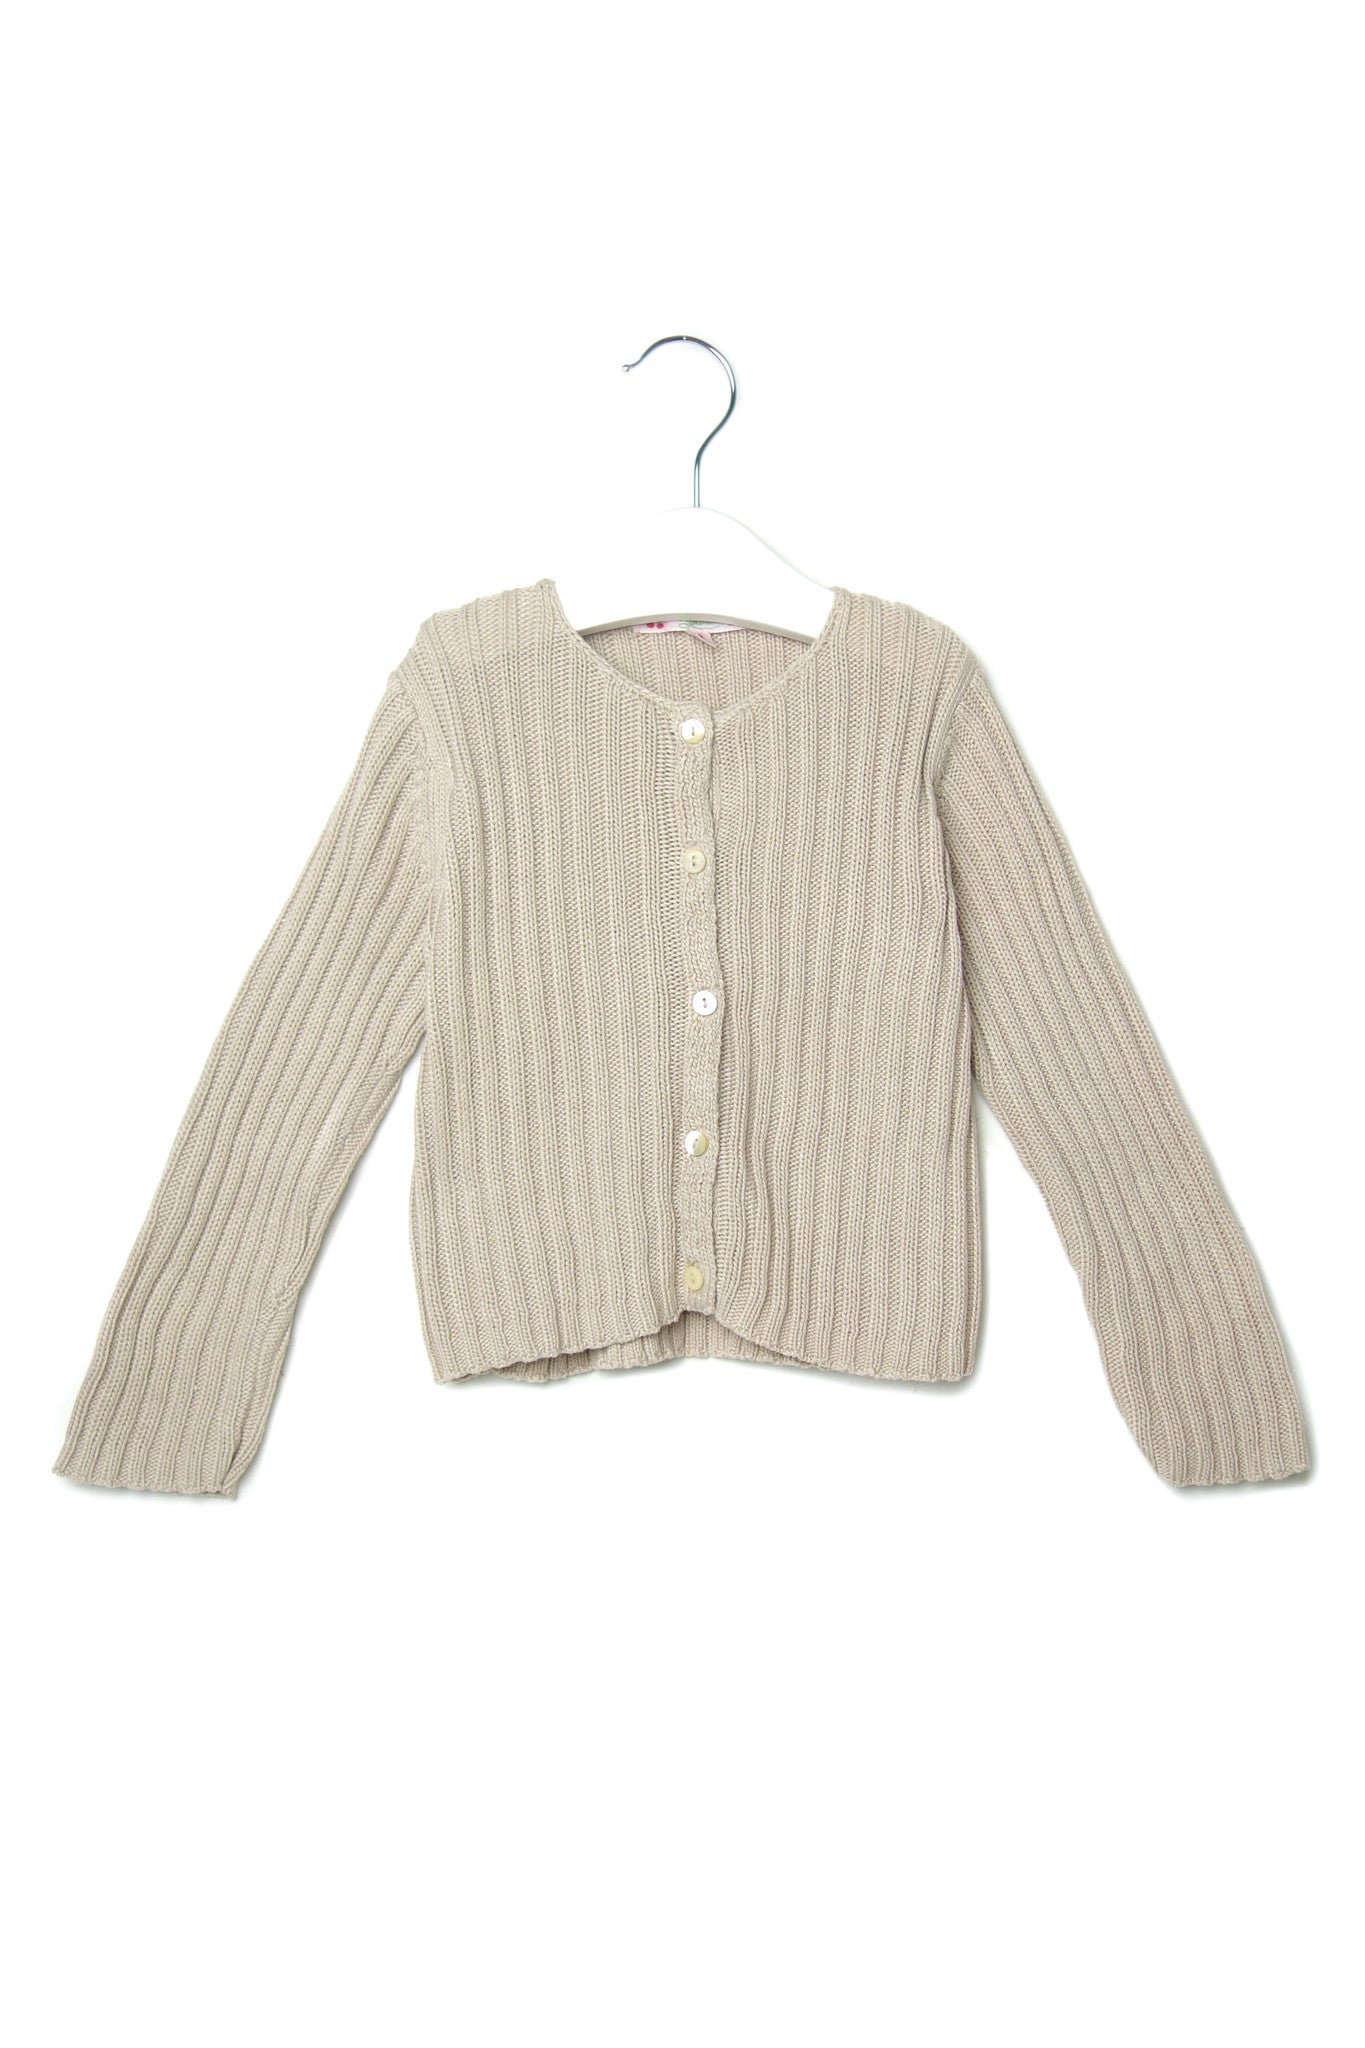 10002048 Bonpoint Kids~Cardigan 2T at Retykle